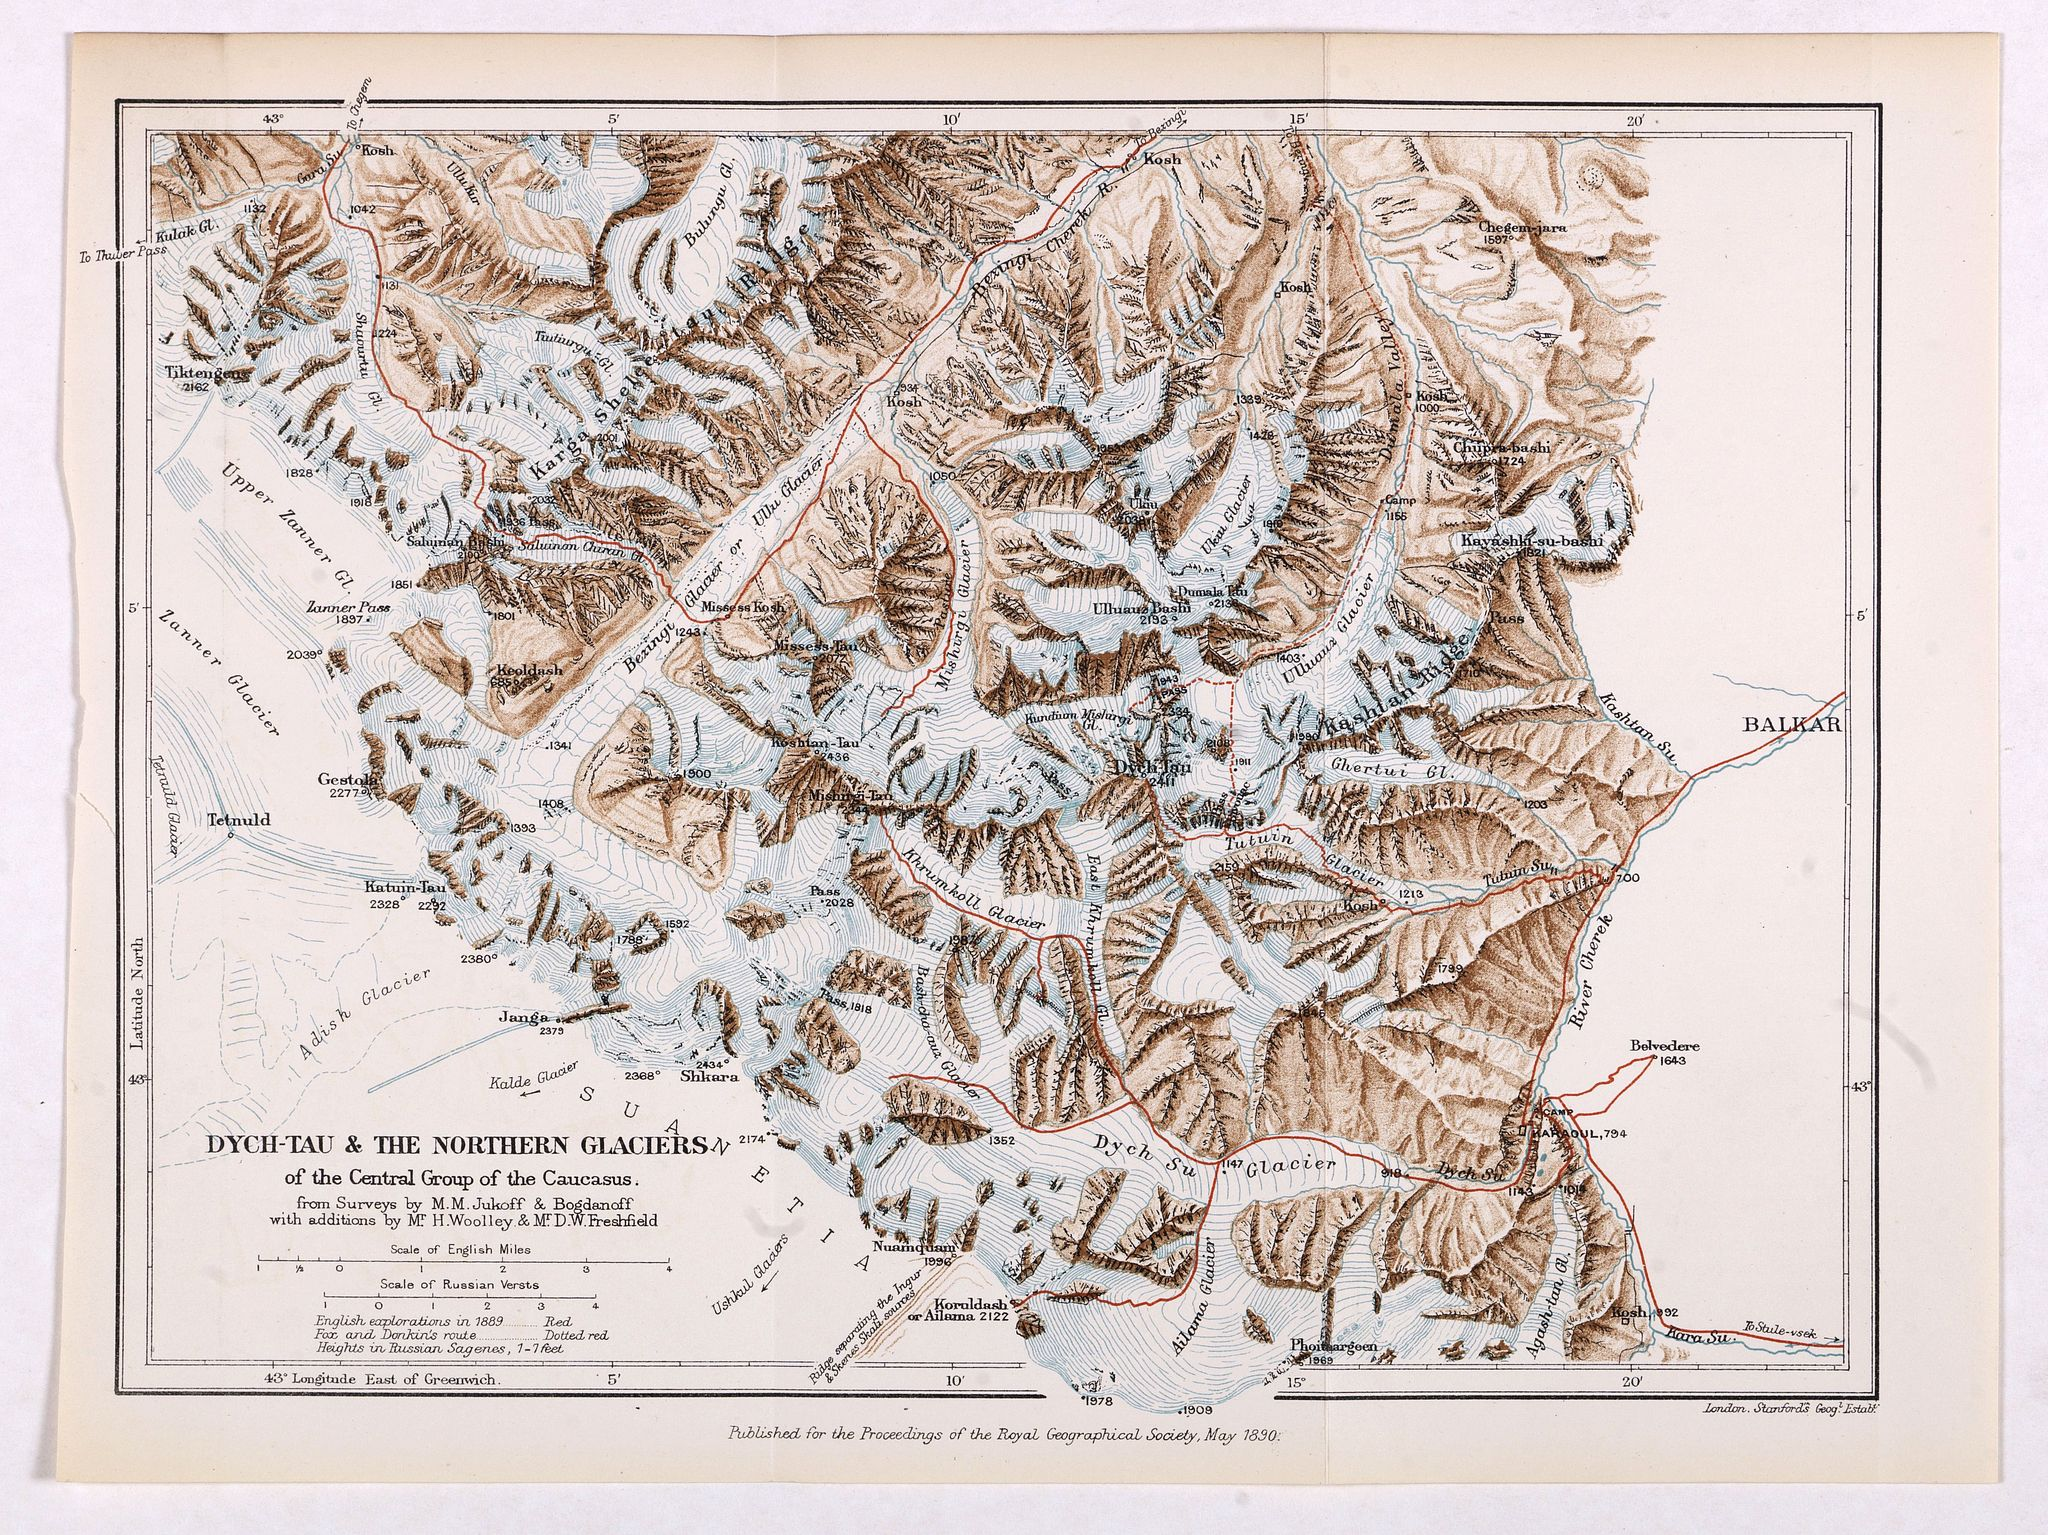 ROYAL GEOGRAPHICAL SOCIETY -  Dych-Tau & the Northern Glaciers of the Central Group of the Caucasus from surveys by M.M.Jukoff & Bogdanoff. . .